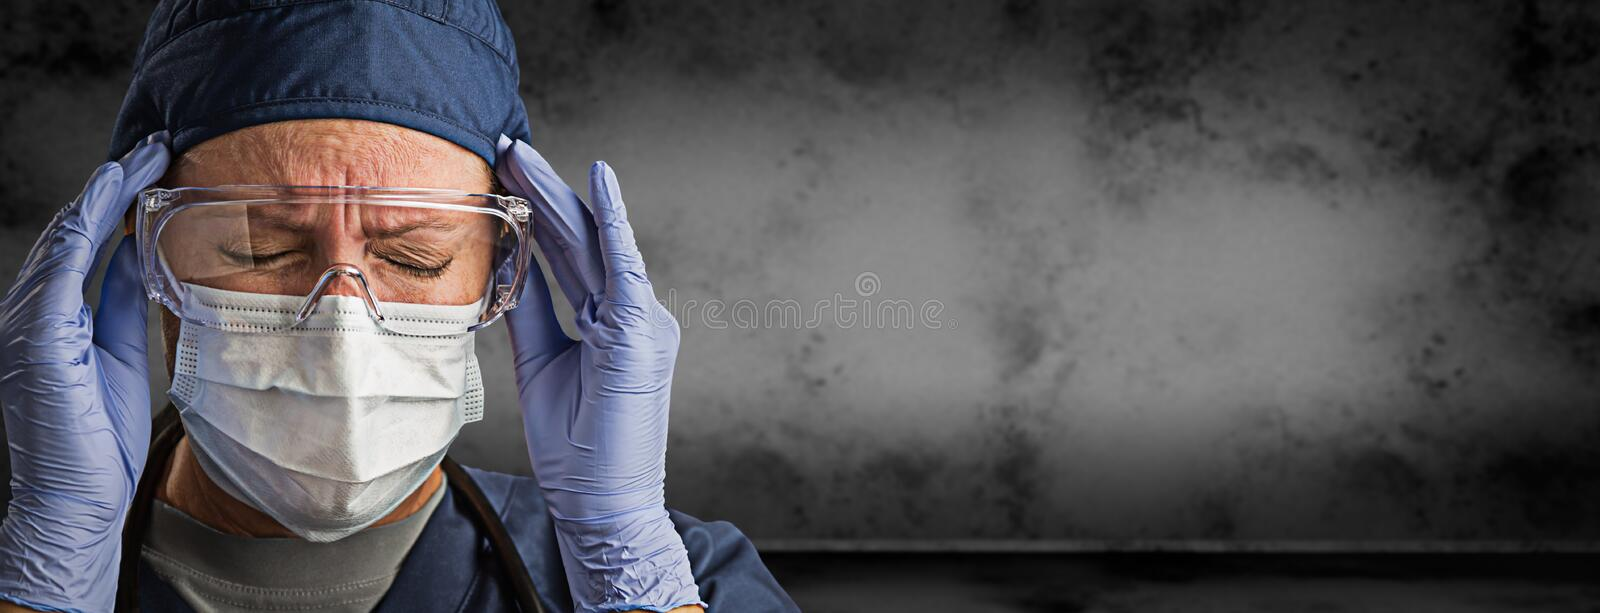 Female Doctor or Nurse Wearing Goggles, Surgical Gloves and Face Mask Against Grungy Dark Background Banner royalty free stock images